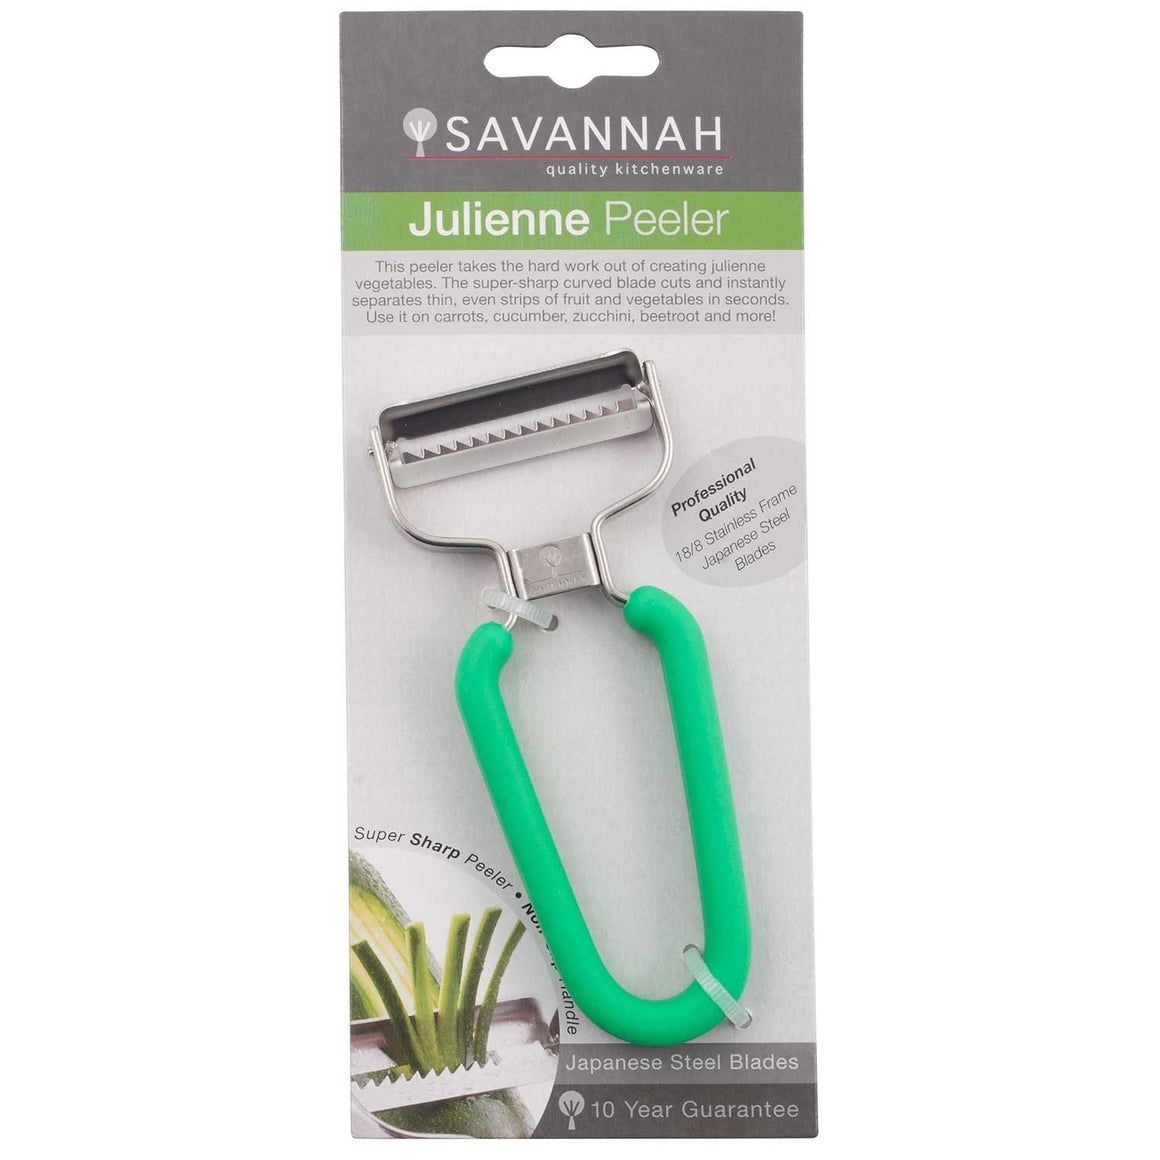 Savannah Y-Shaped Julienne Peeler Green - stuff-n-things